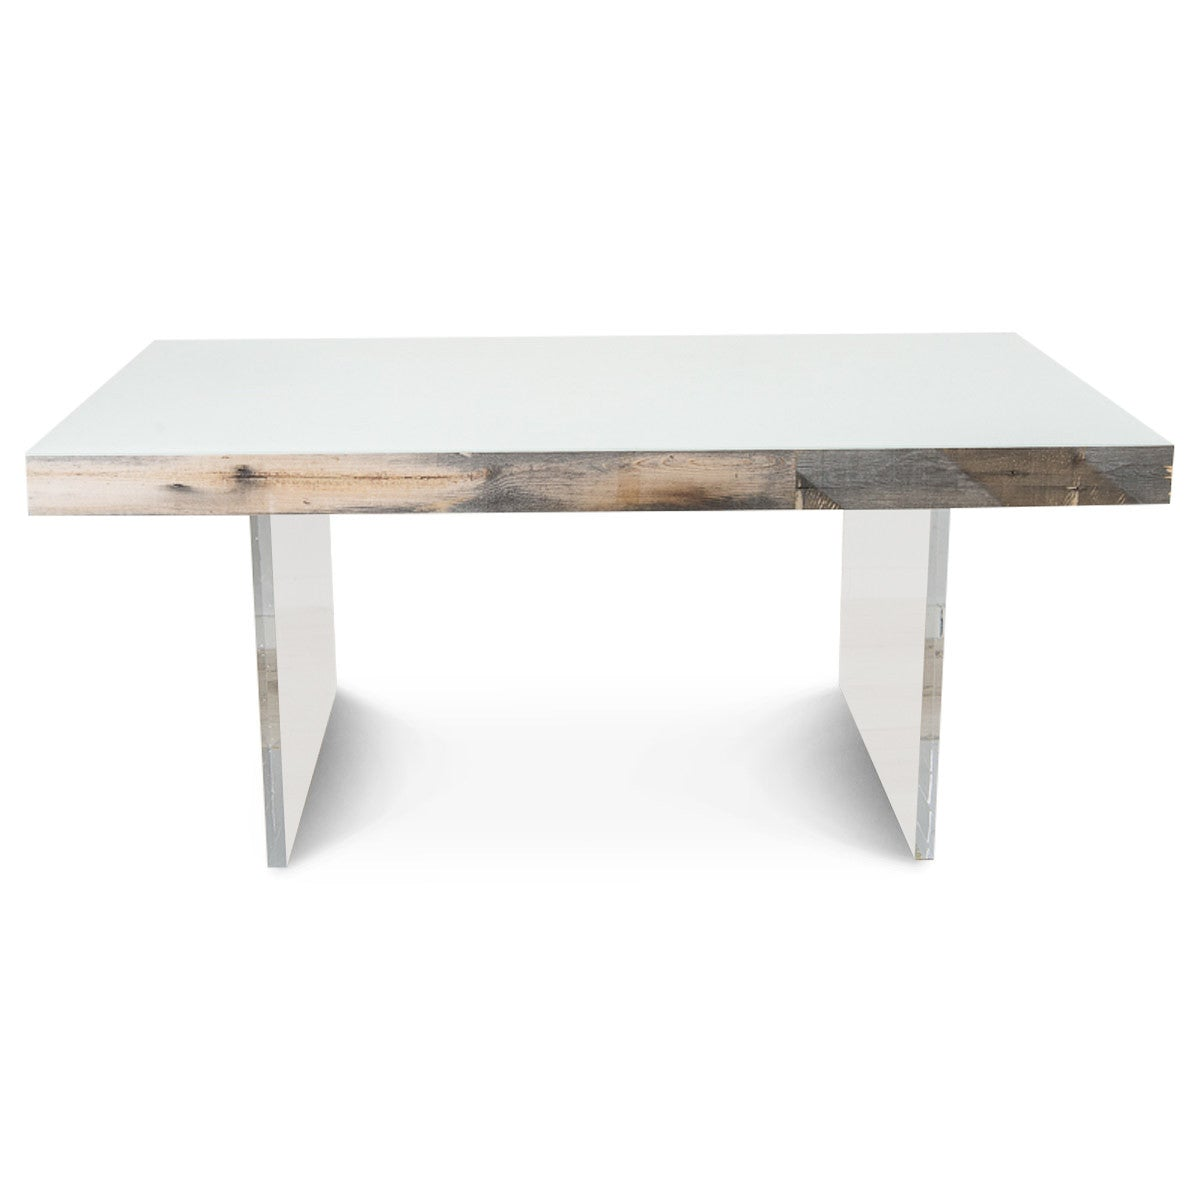 Modern dining table in recycled wood and lucite modshop for Reusable wood